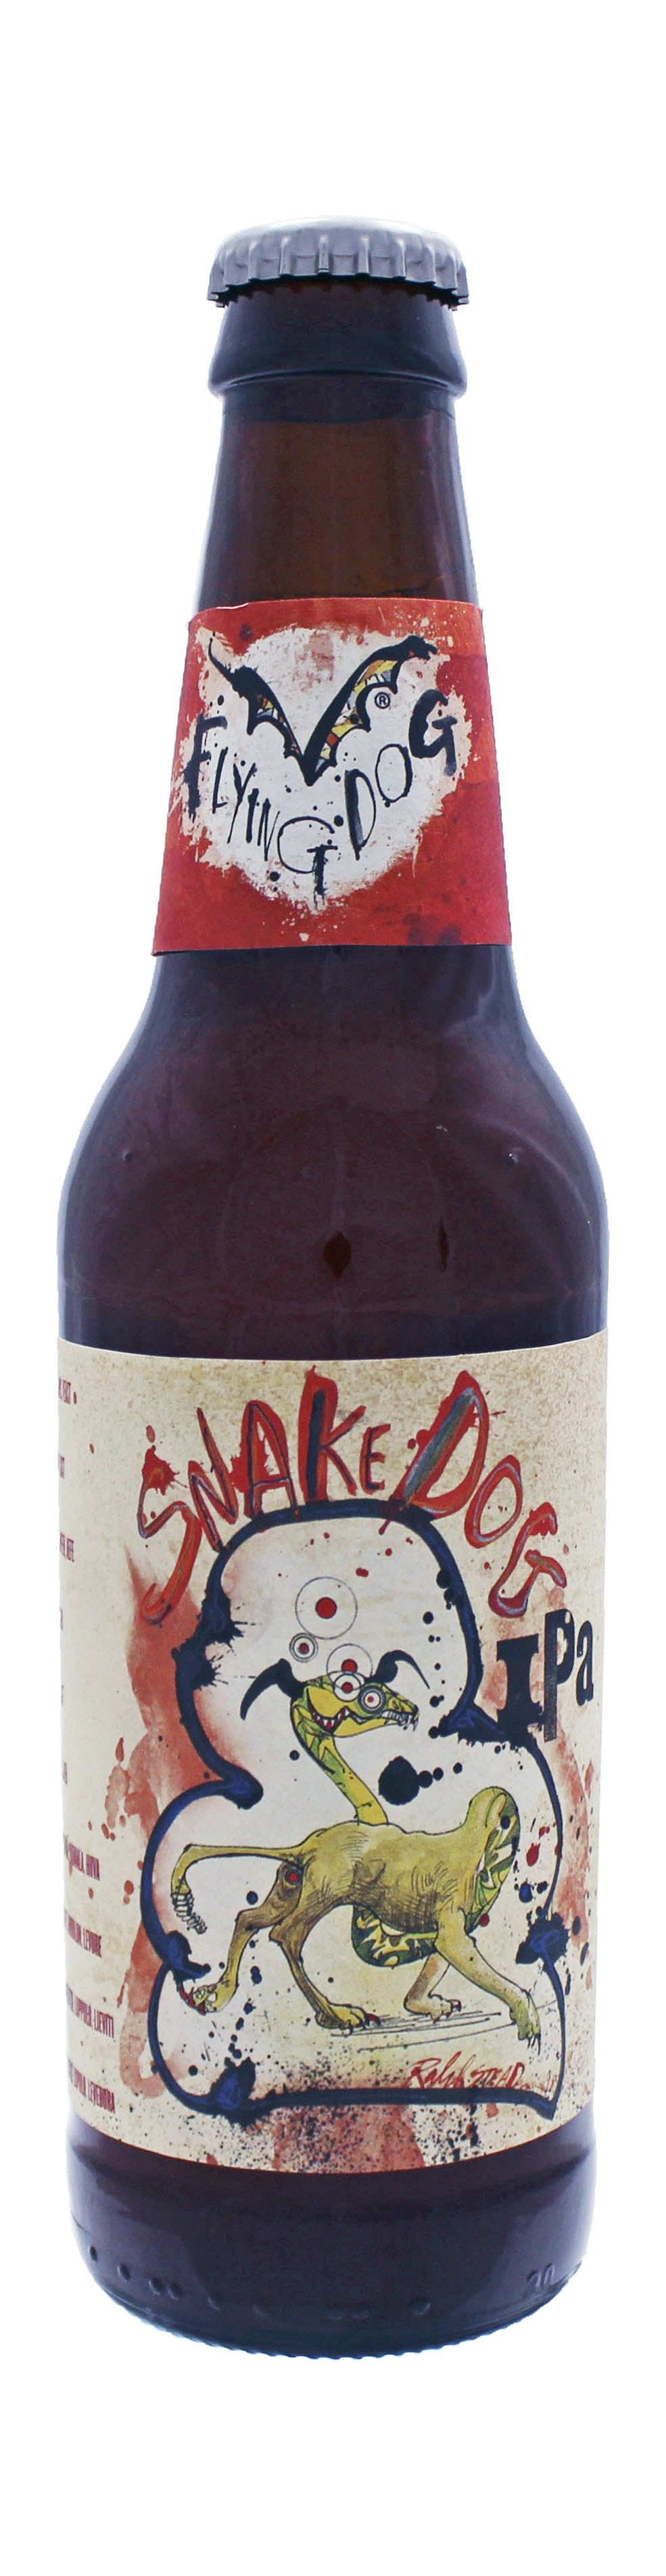 Photo de face de Snake Dog IPA